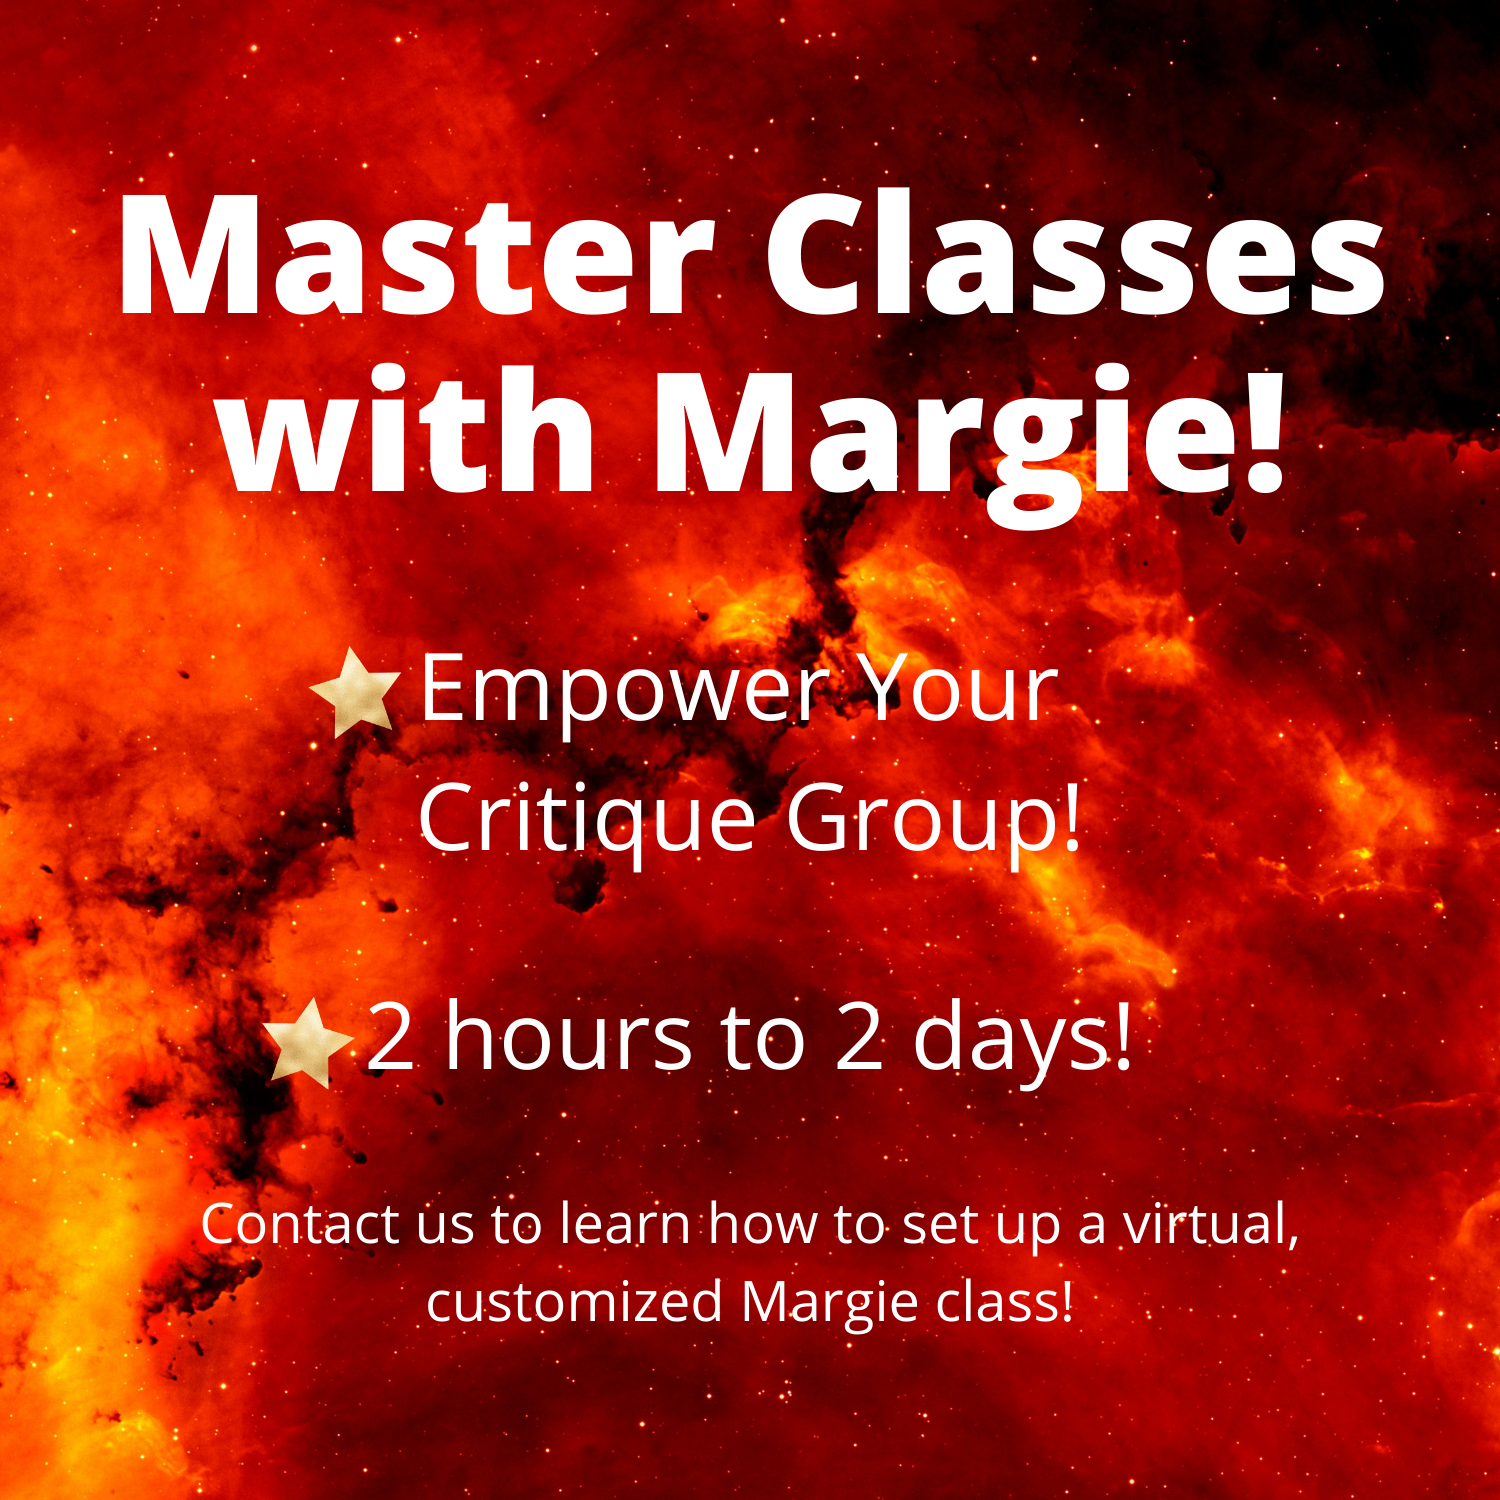 Master Classes with Margie - Empower Your Critique Group!